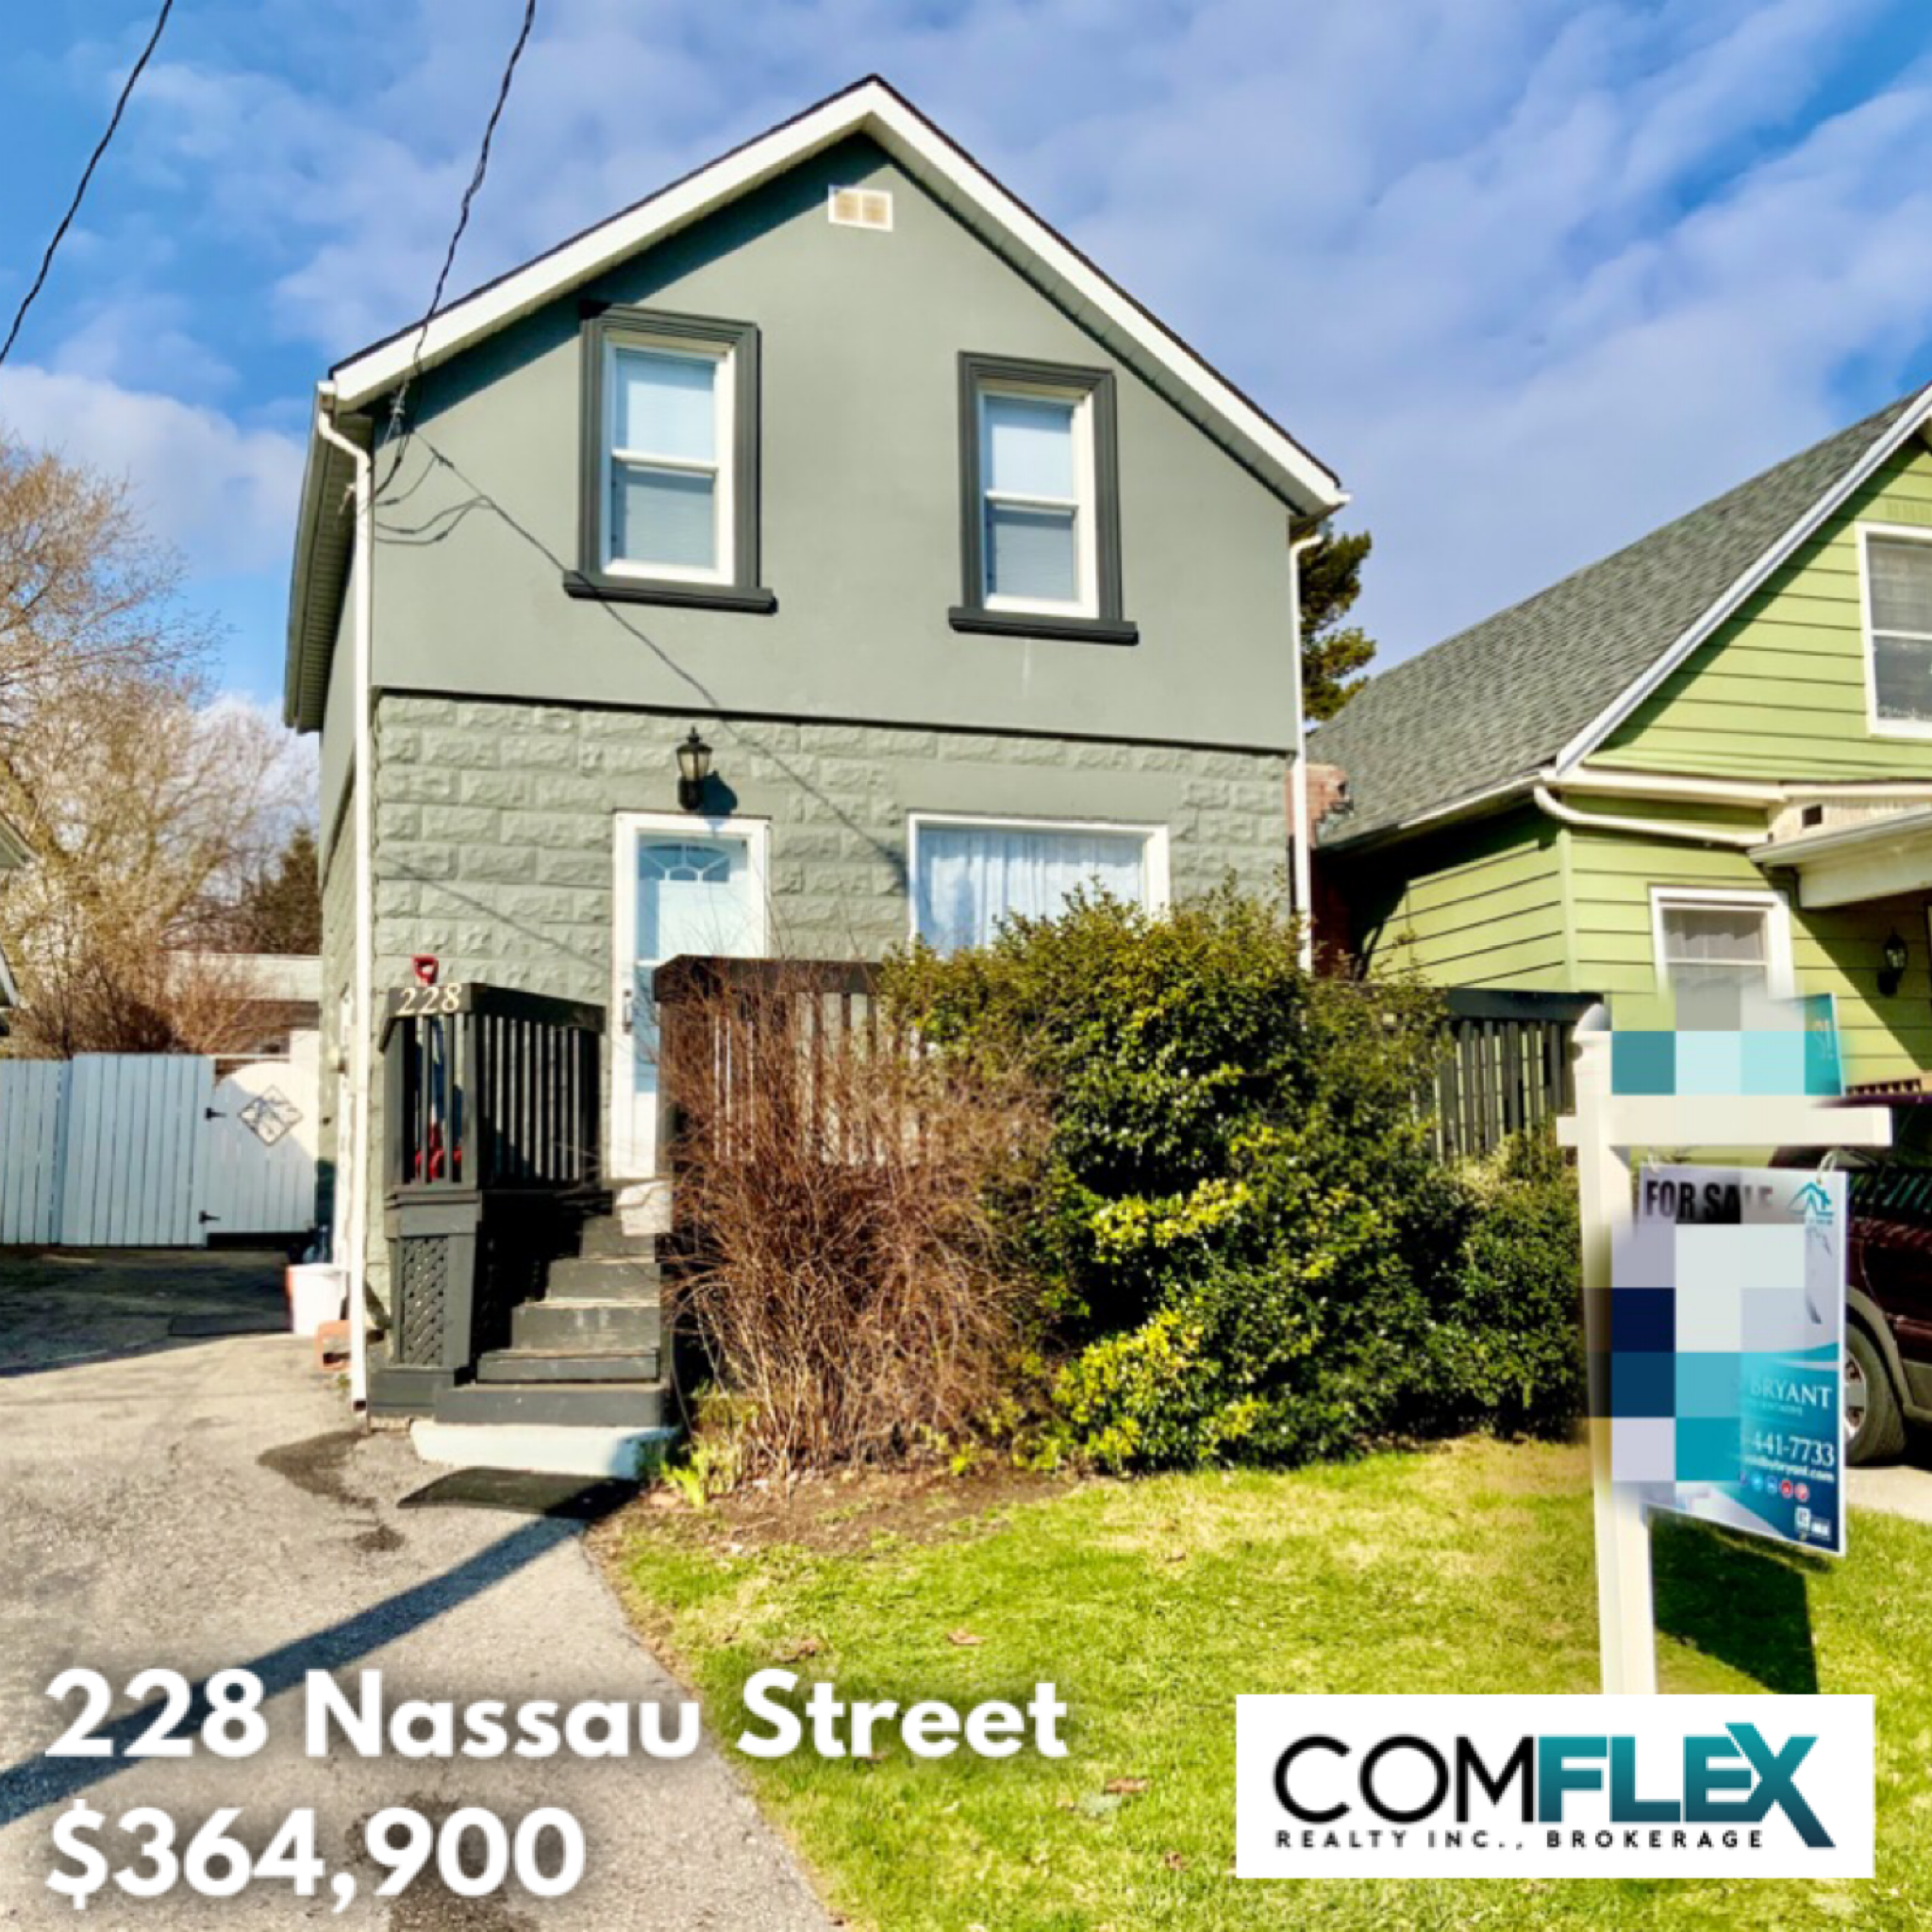 JUST LISTED! 228 NASSAU STREET